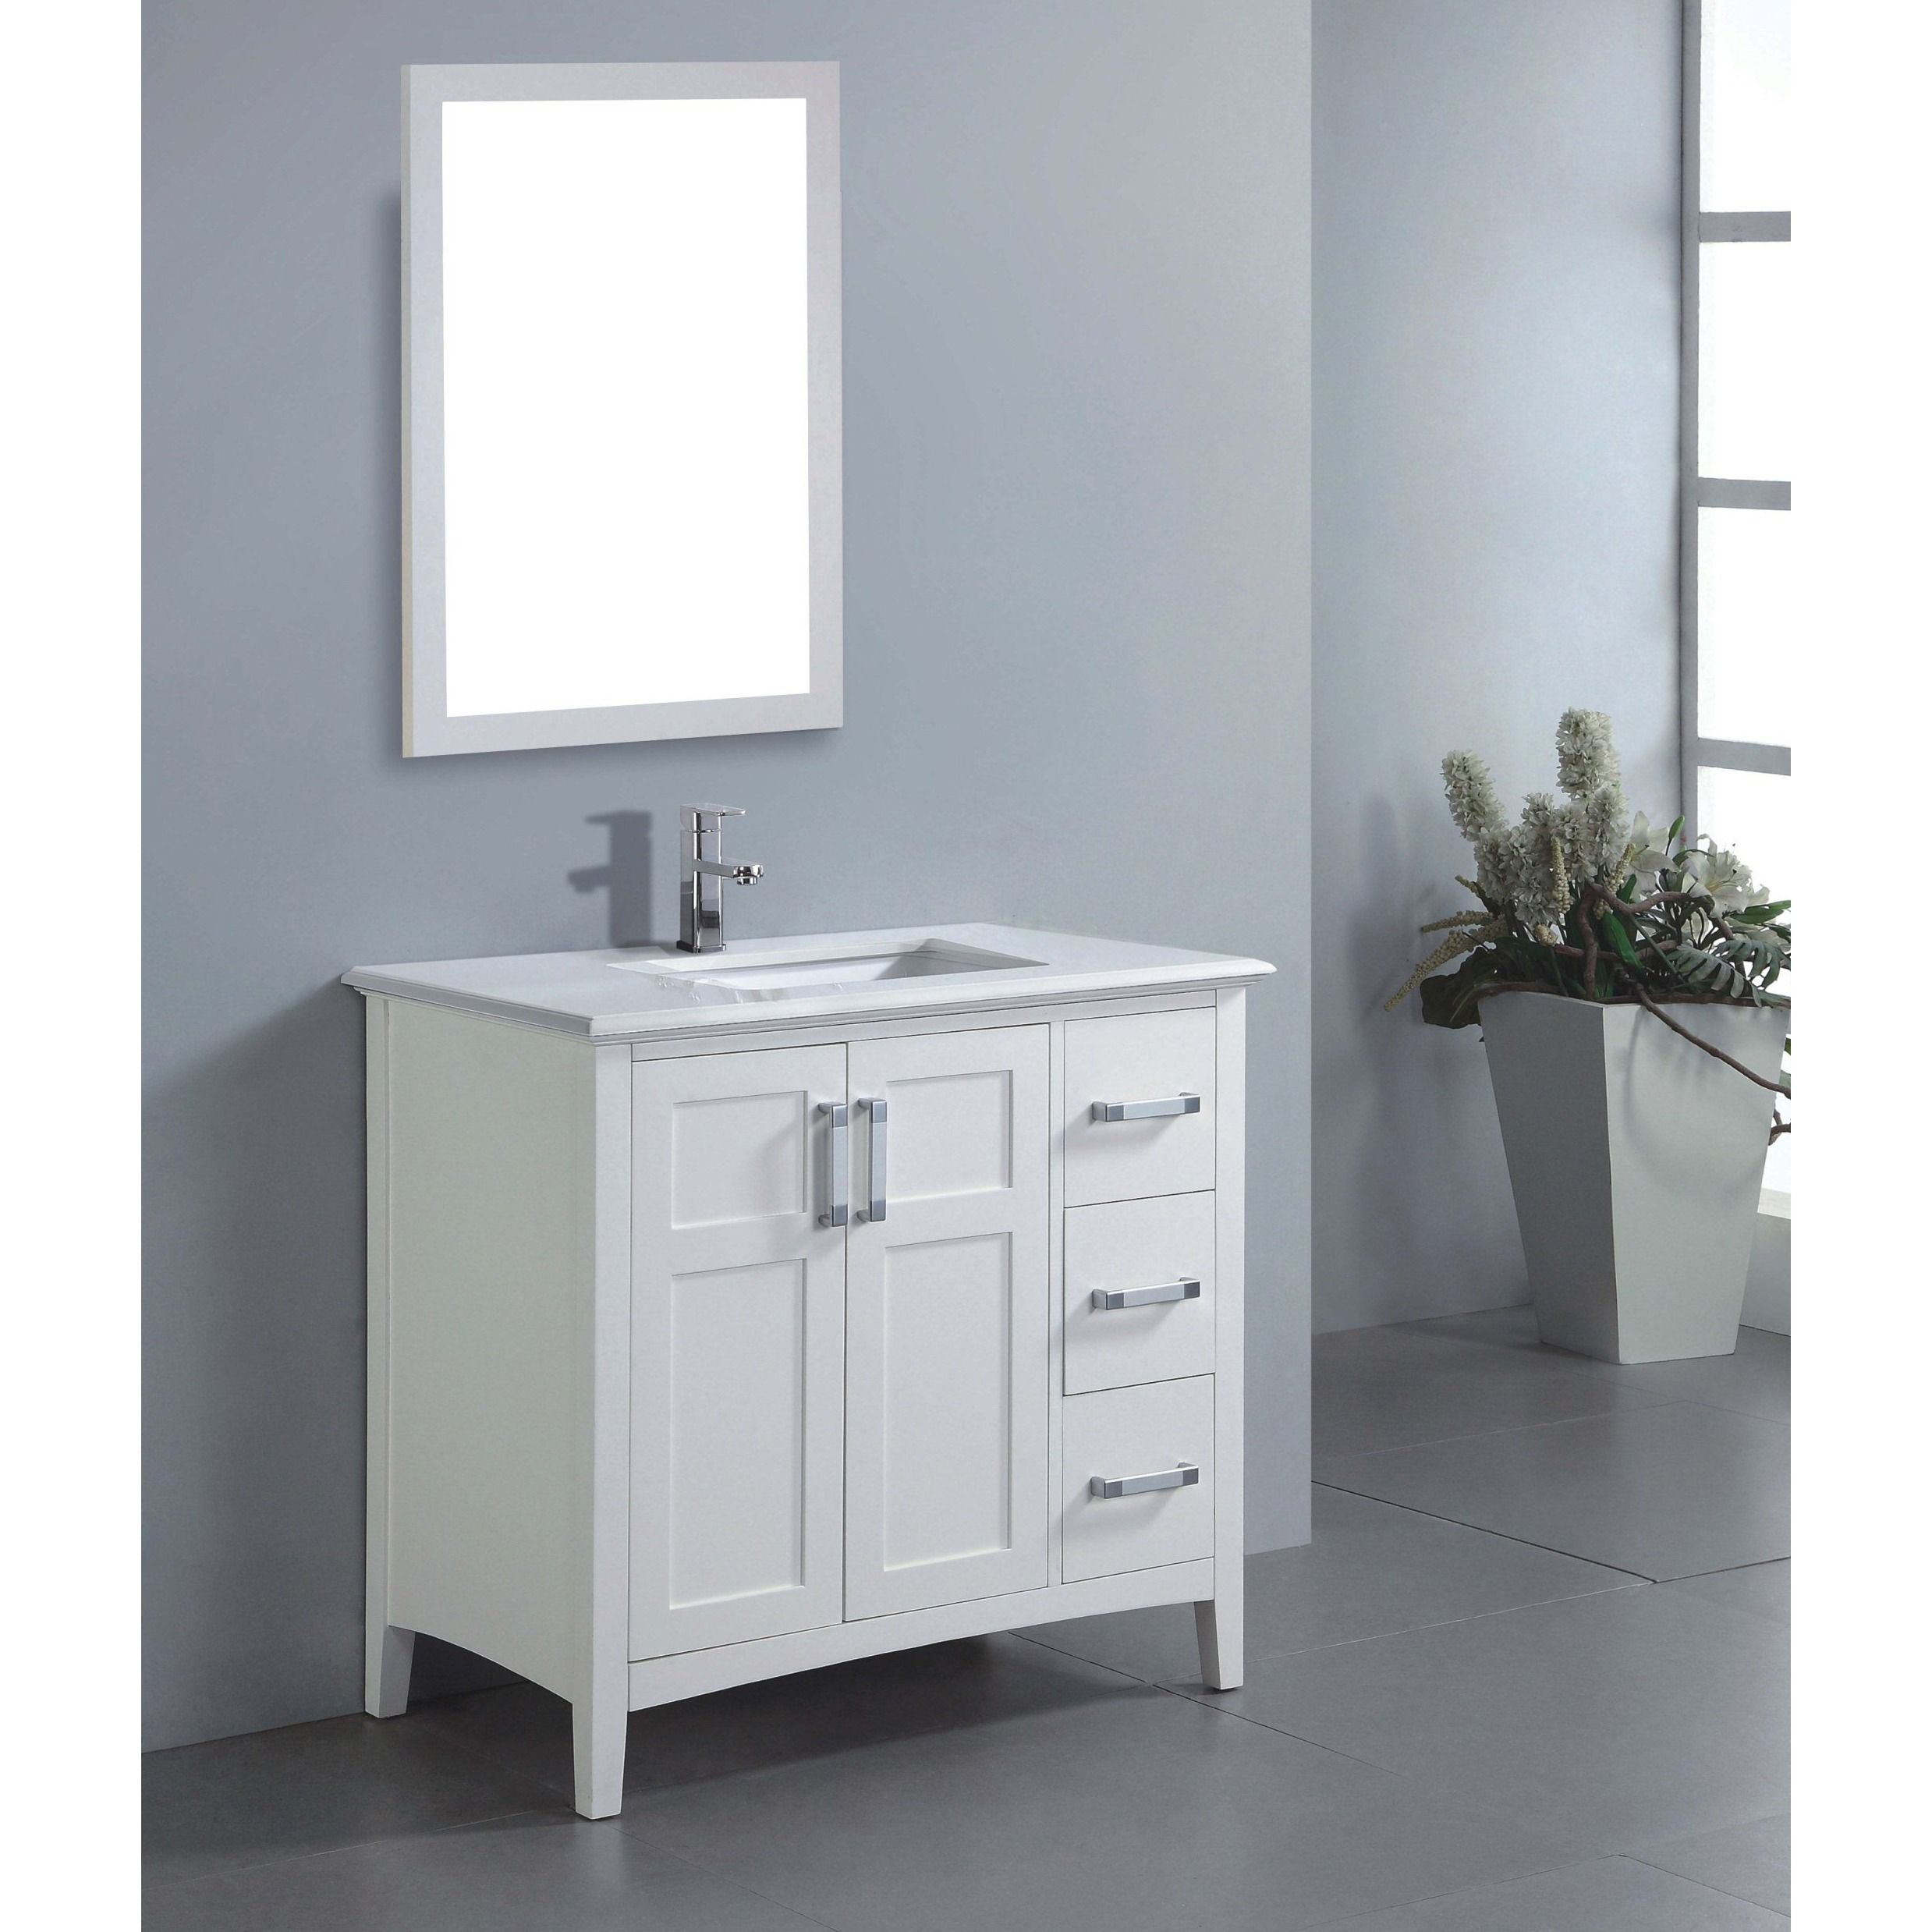 Overstock   The 36 Inch Salem Vanity Is Defined By Its White Finish, Chrome